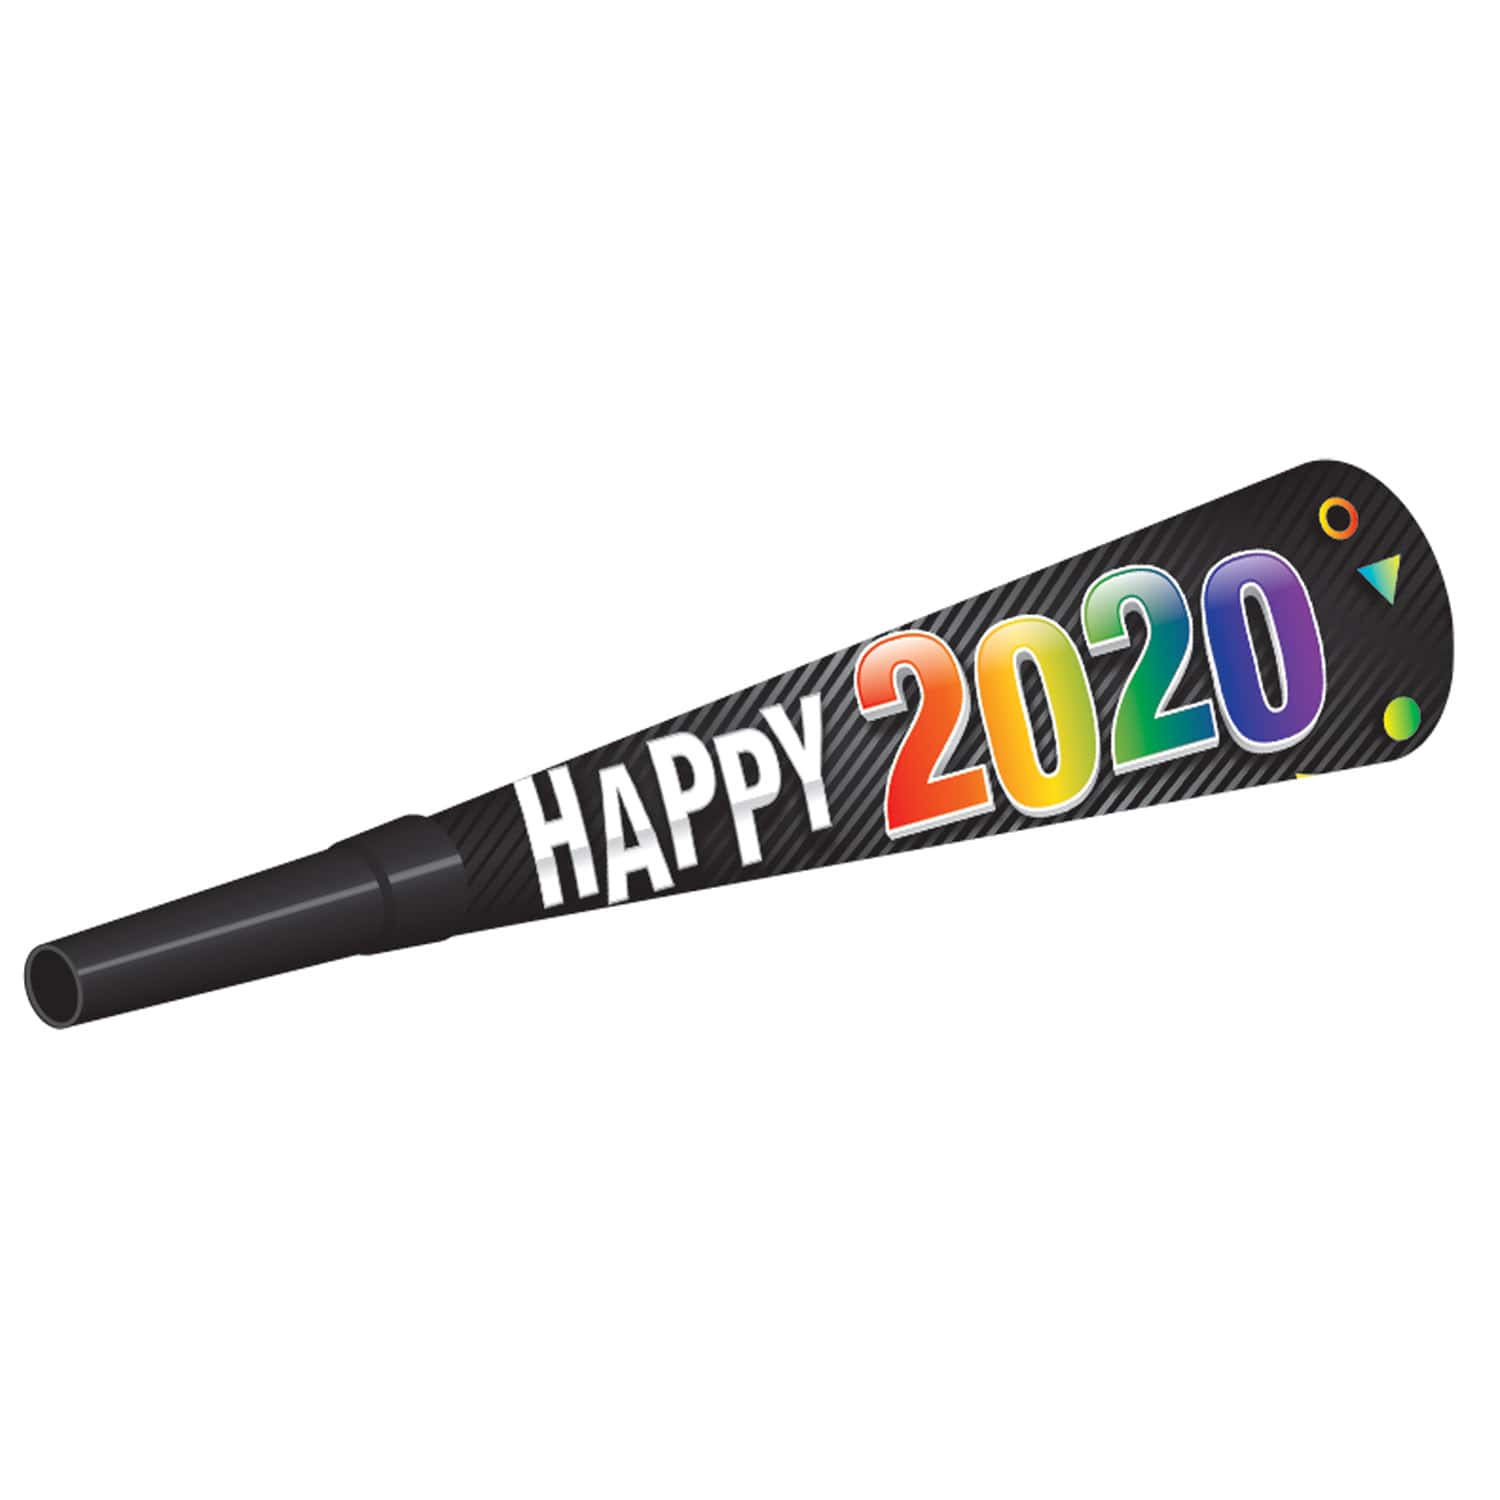 """2020"" Midnight Horns (Pack of 100) ""2020"" Midnight Horns, 2020, midnight horns, party horns, noisemakers, party favor, new years eve, wholesale, inexpensive, bulk"